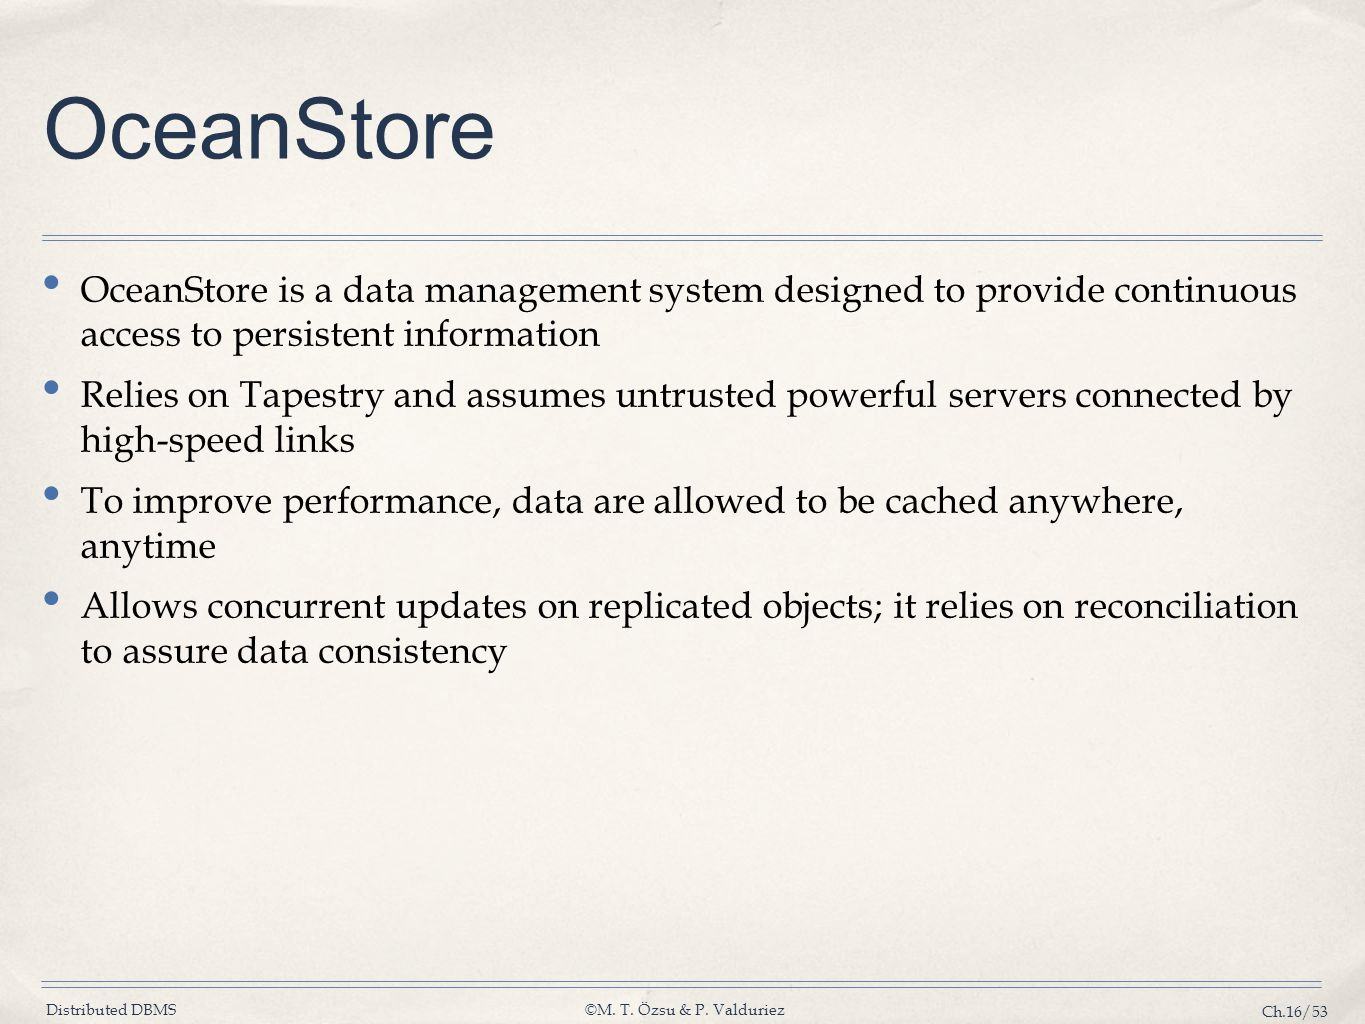 Distributed DBMS©M. T. Özsu & P. Valduriez Ch.16/53 OceanStore OceanStore is a data management system designed to provide continuous access to persist